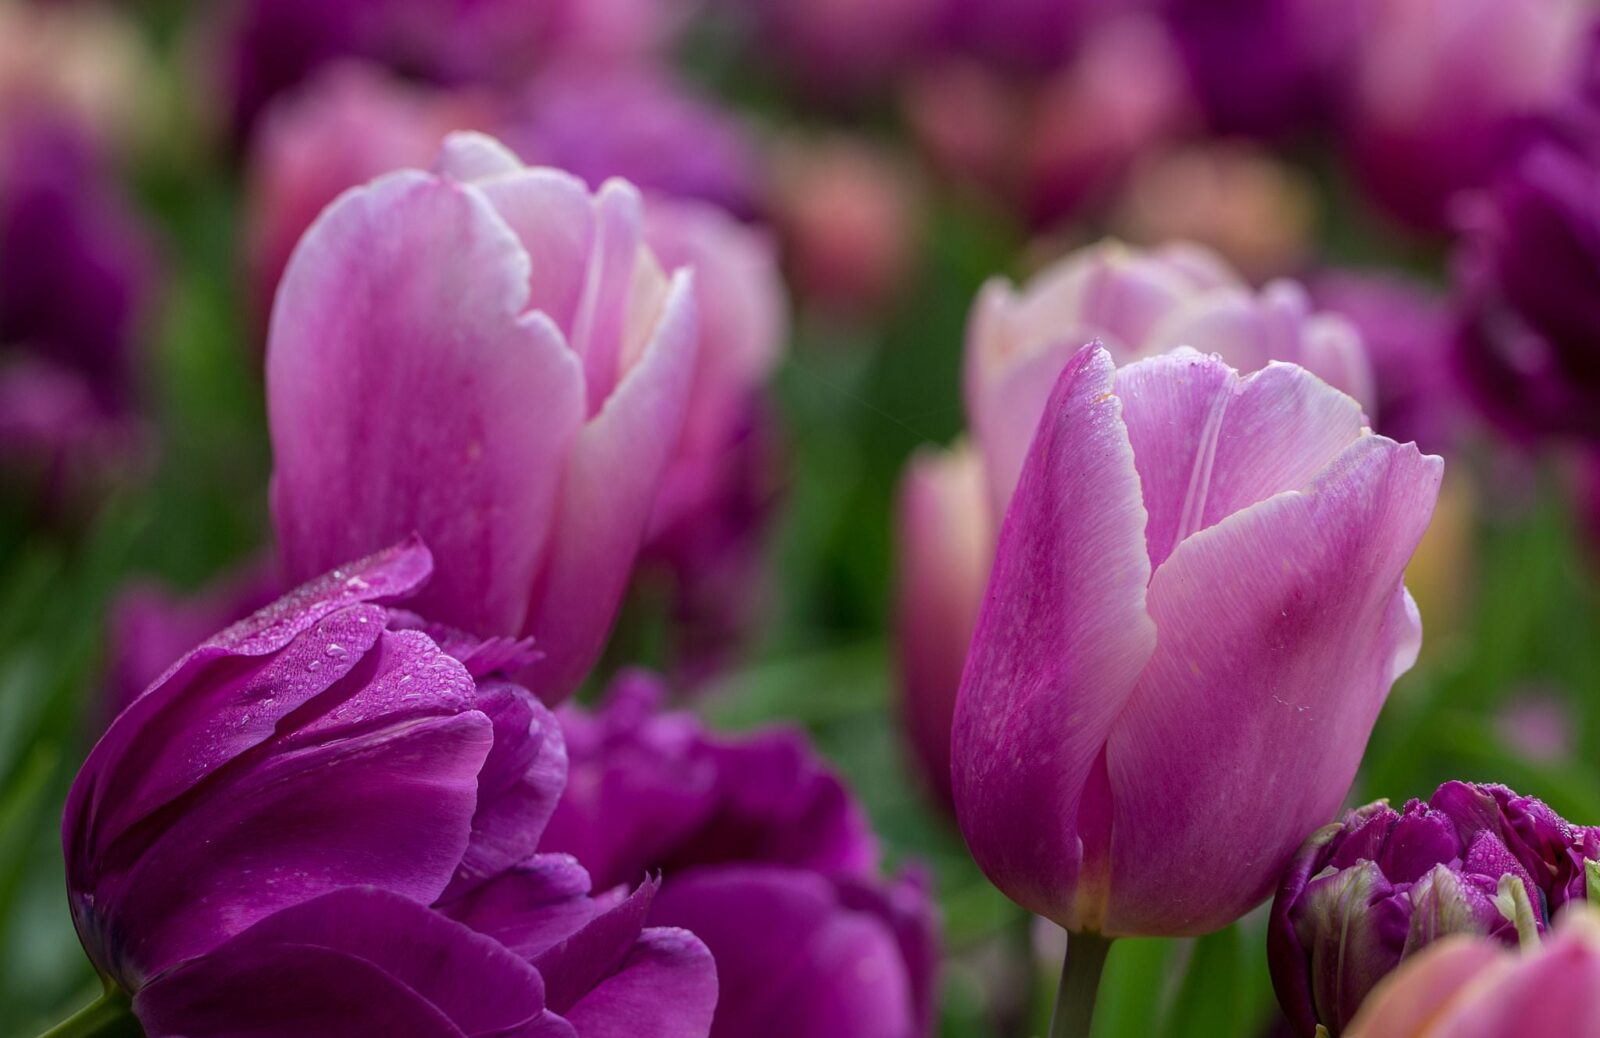 Image of pink Tulips